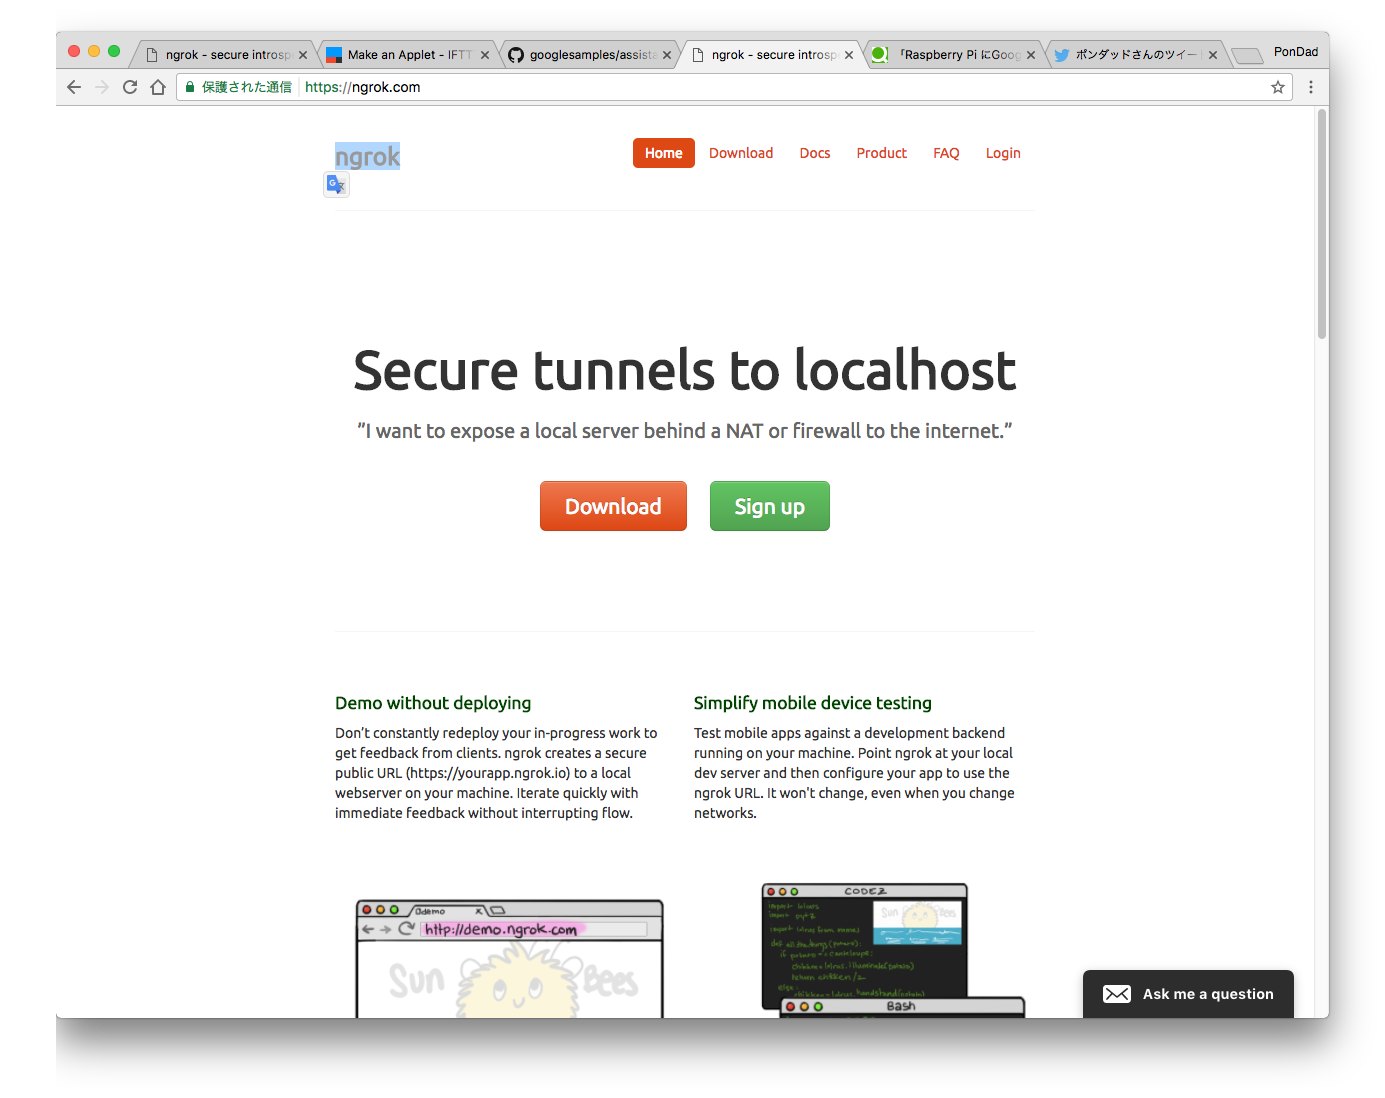 ngrok - secure introspectable tunnels to localhost 2017-04-29 23-59-44.png